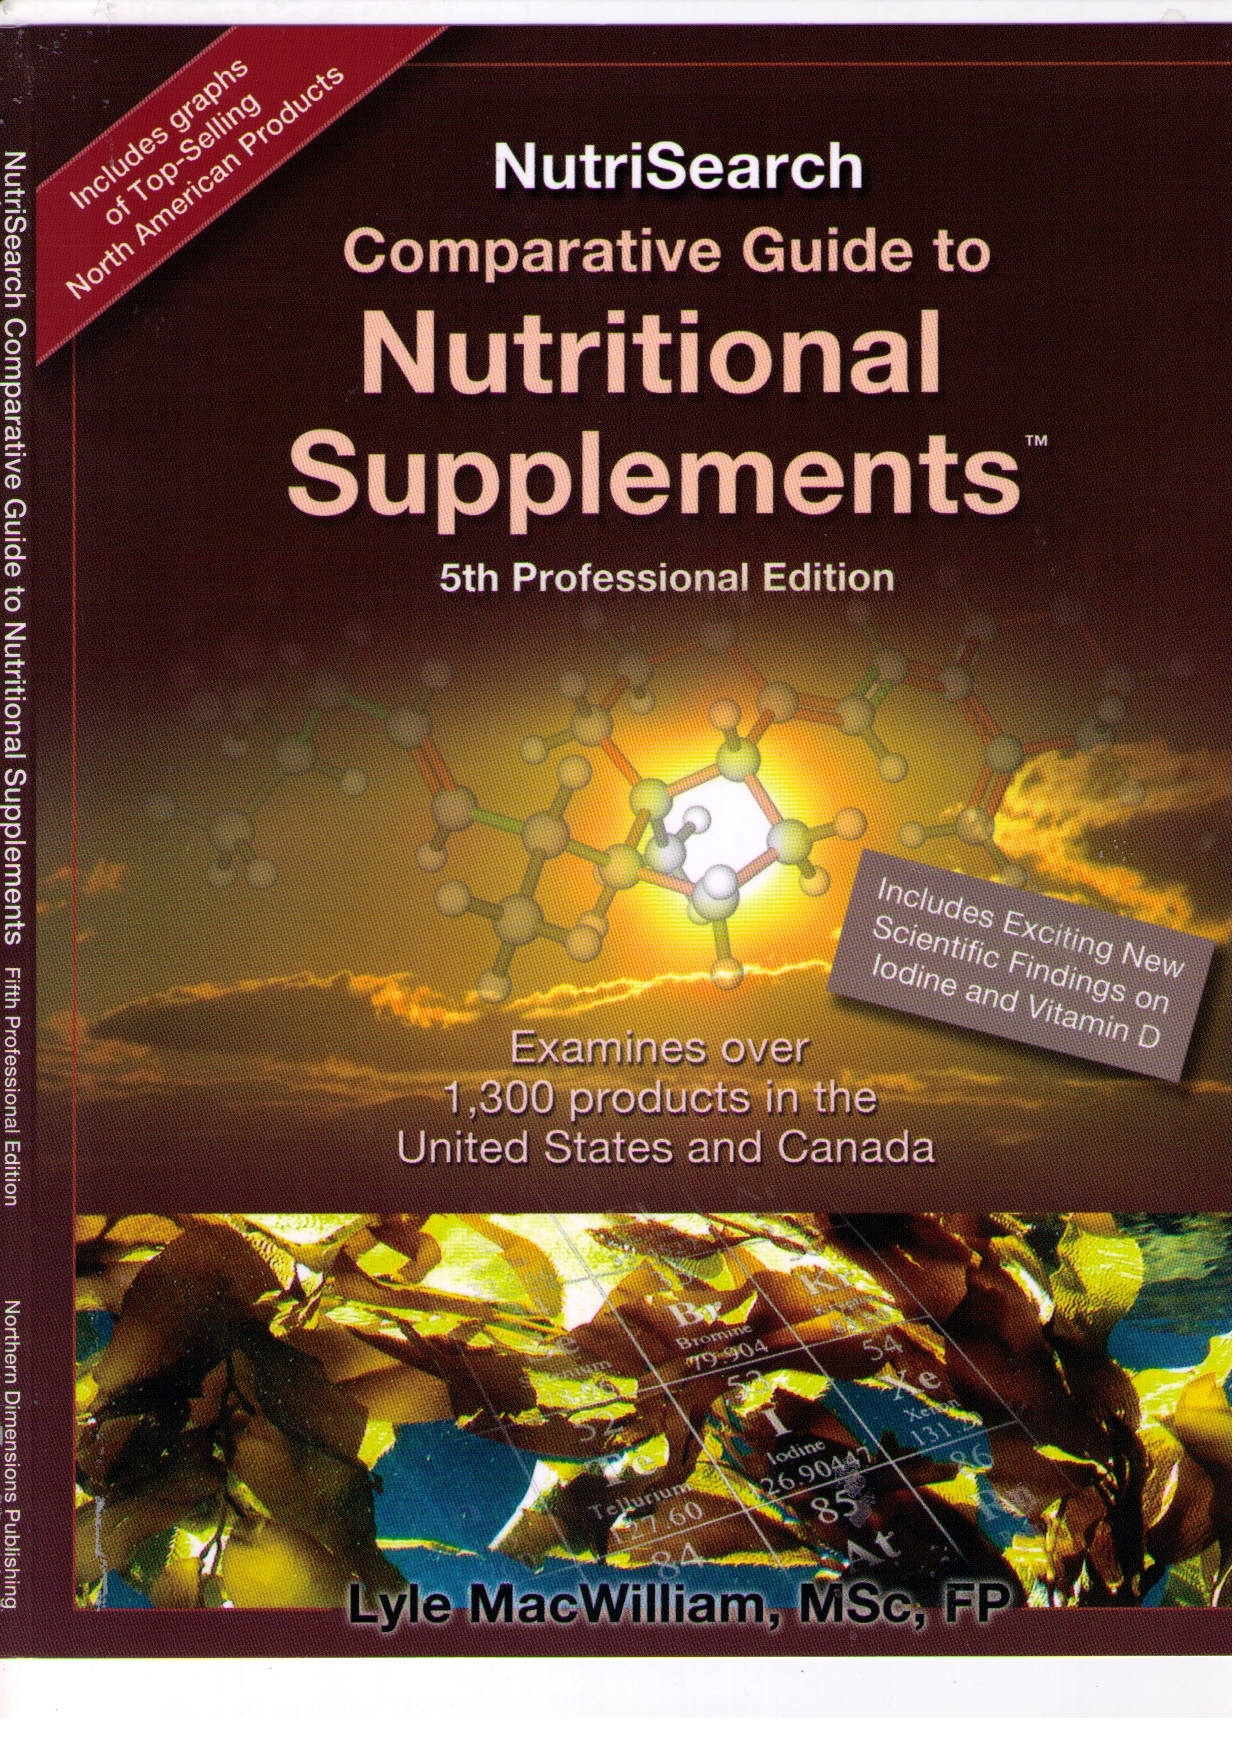 Comparative Guide to Nutritional Supplements; 2014 5th Edition; Lyle Macwilliam